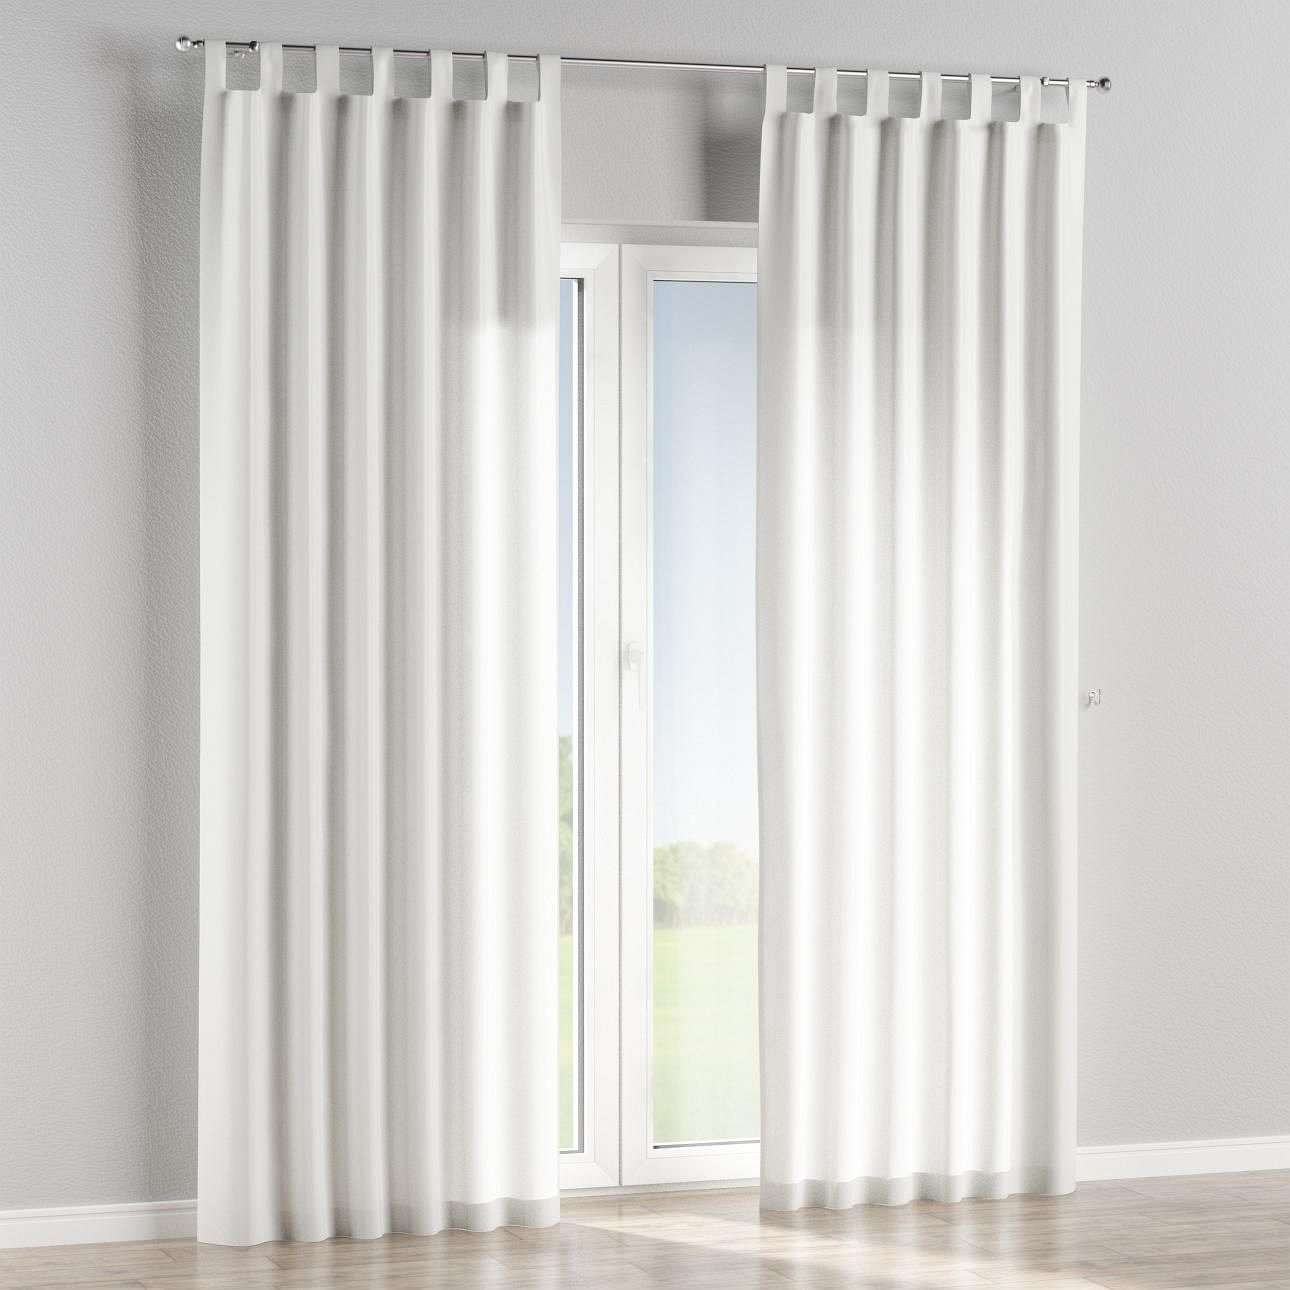 Tab top lined curtains in collection Victoria, fabric: 130-06